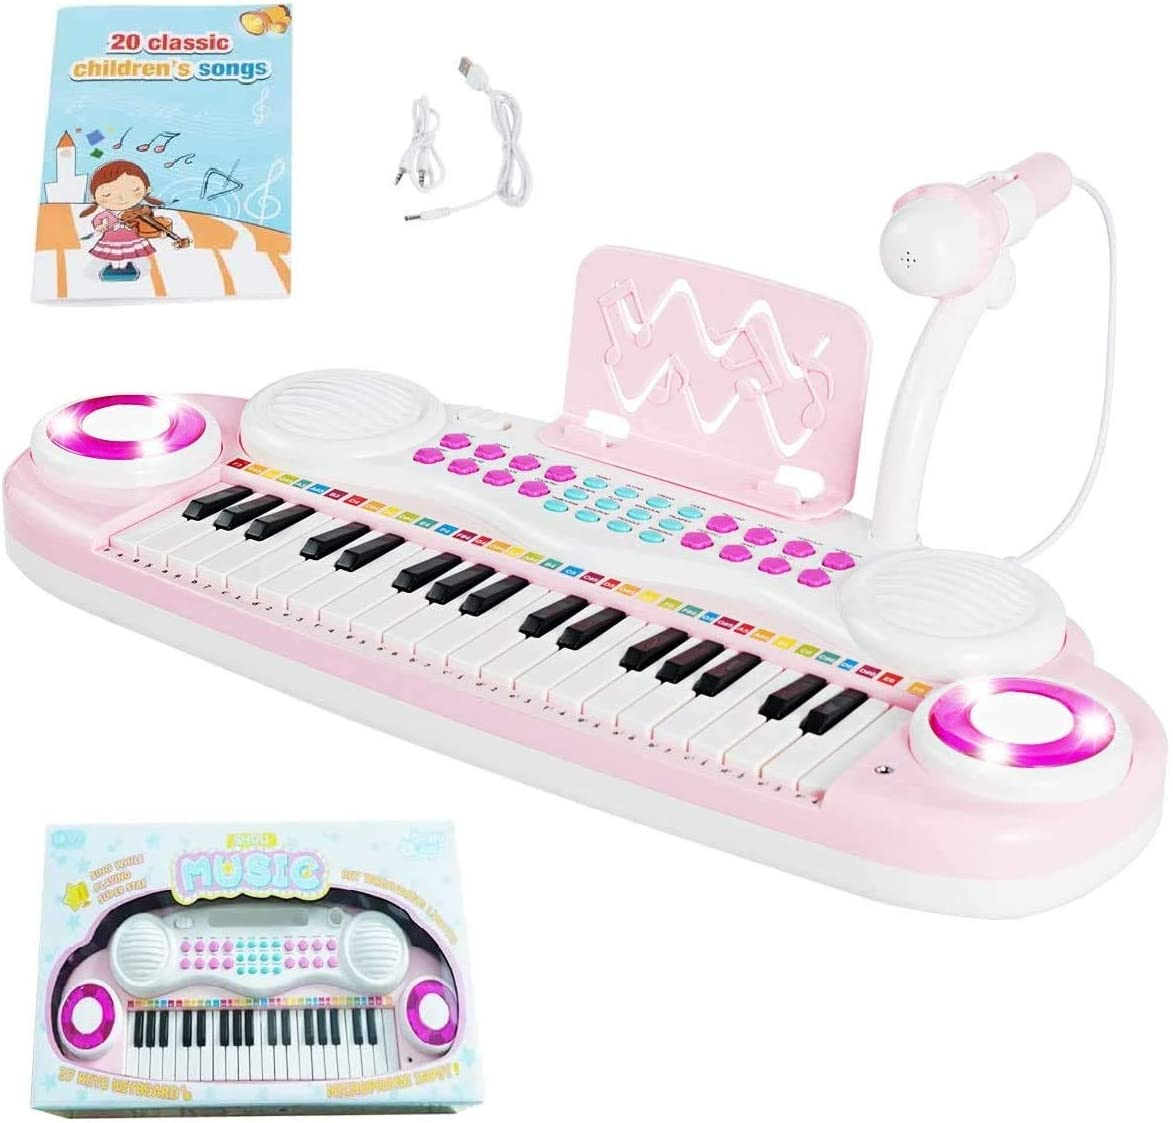 Costzon 37 Keys Electronic Keyboard Mus Piano Portable Price reduction for Kids Max 84% OFF